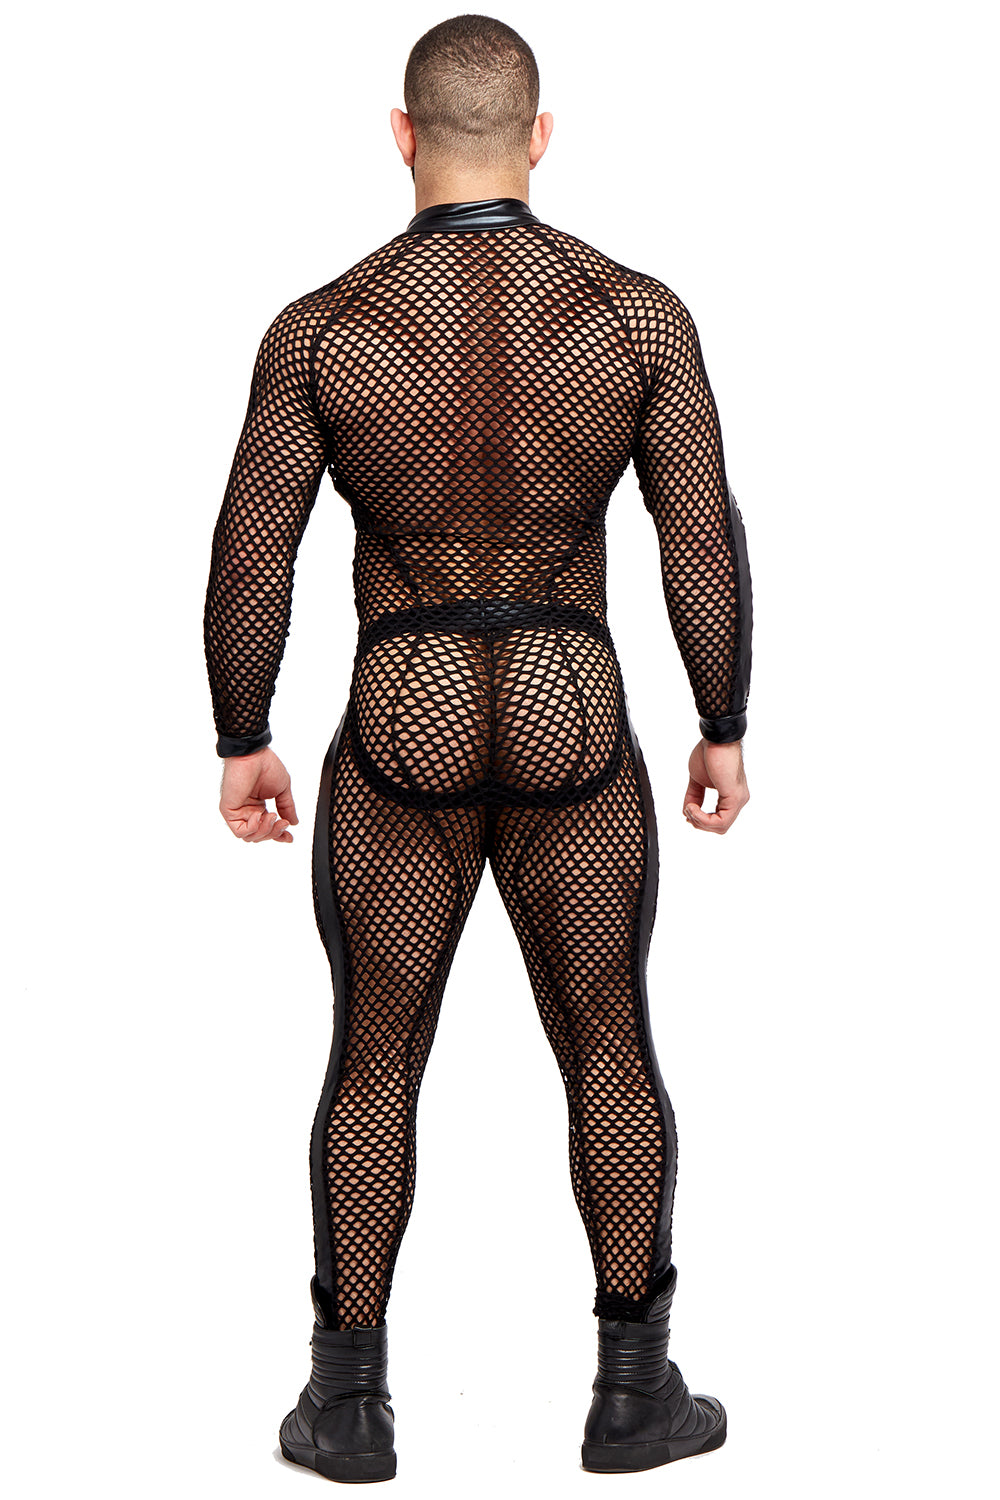 Net Racing Suit